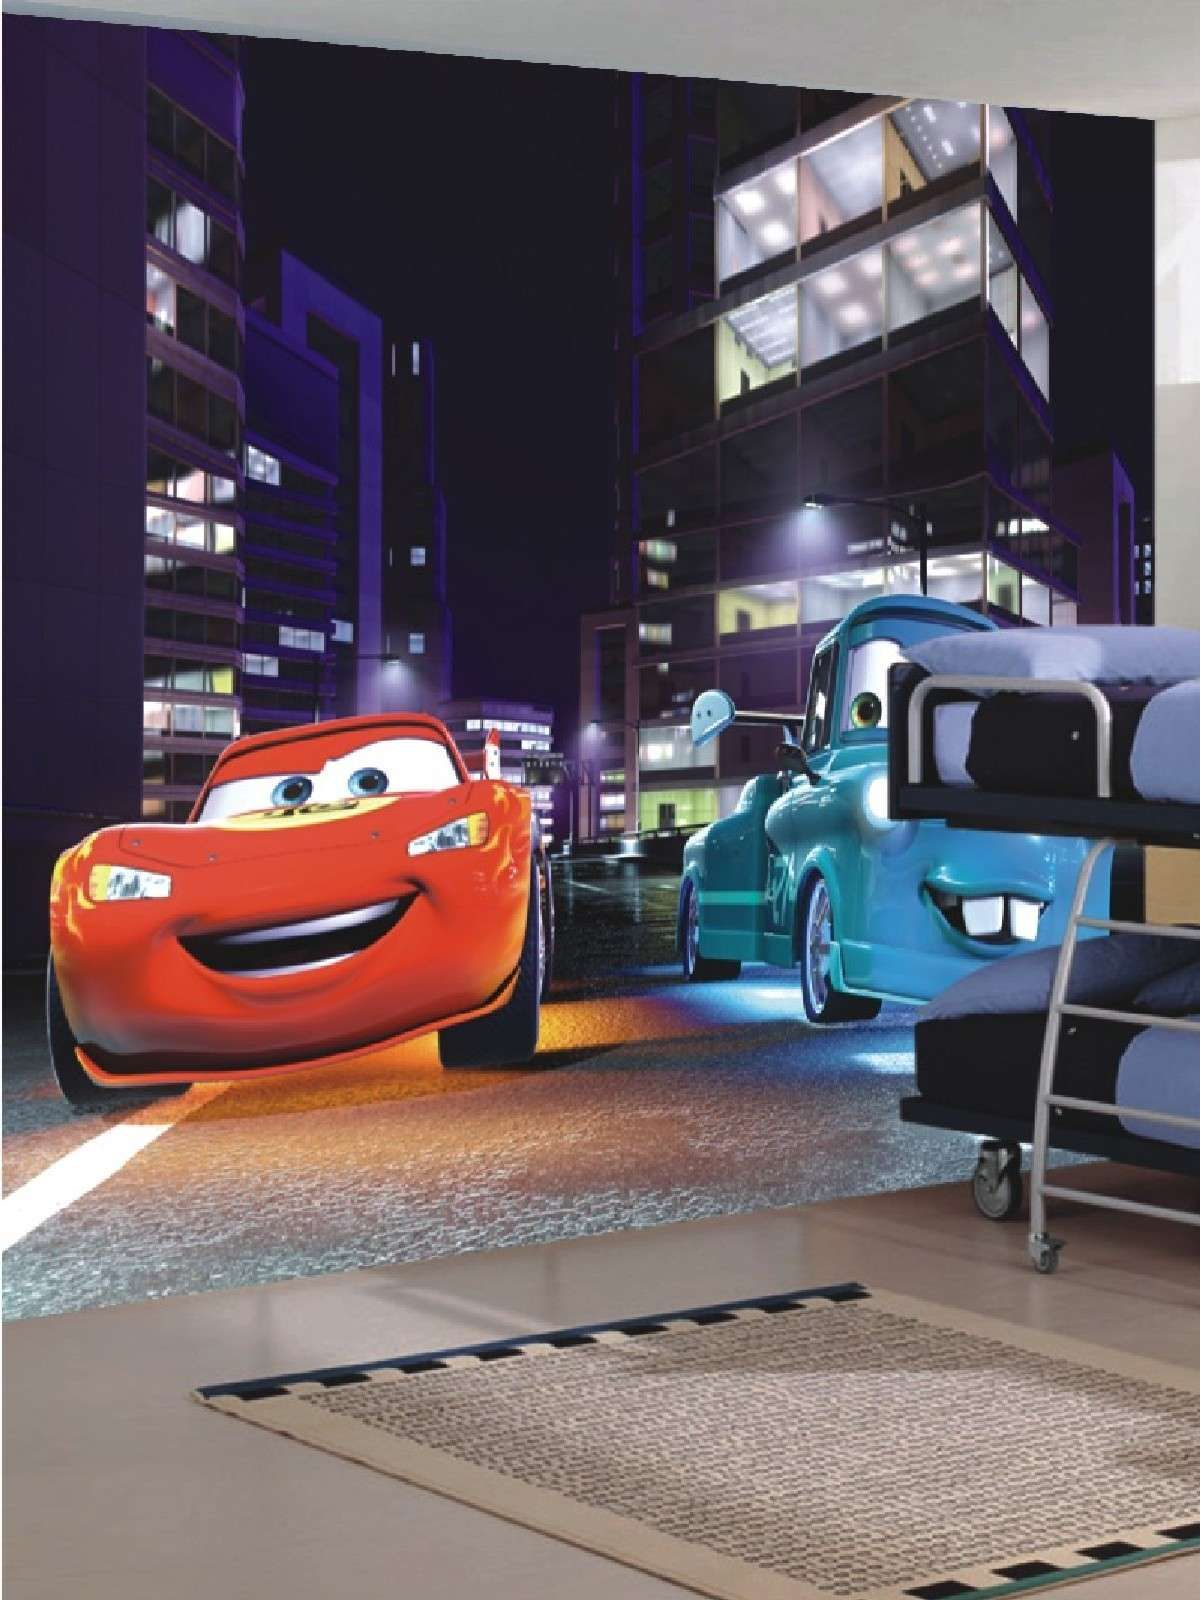 Disney cars midnight racers large digital print wall mural you disney cars midnight racers large digital print wall mural you can get some really great amipublicfo Image collections